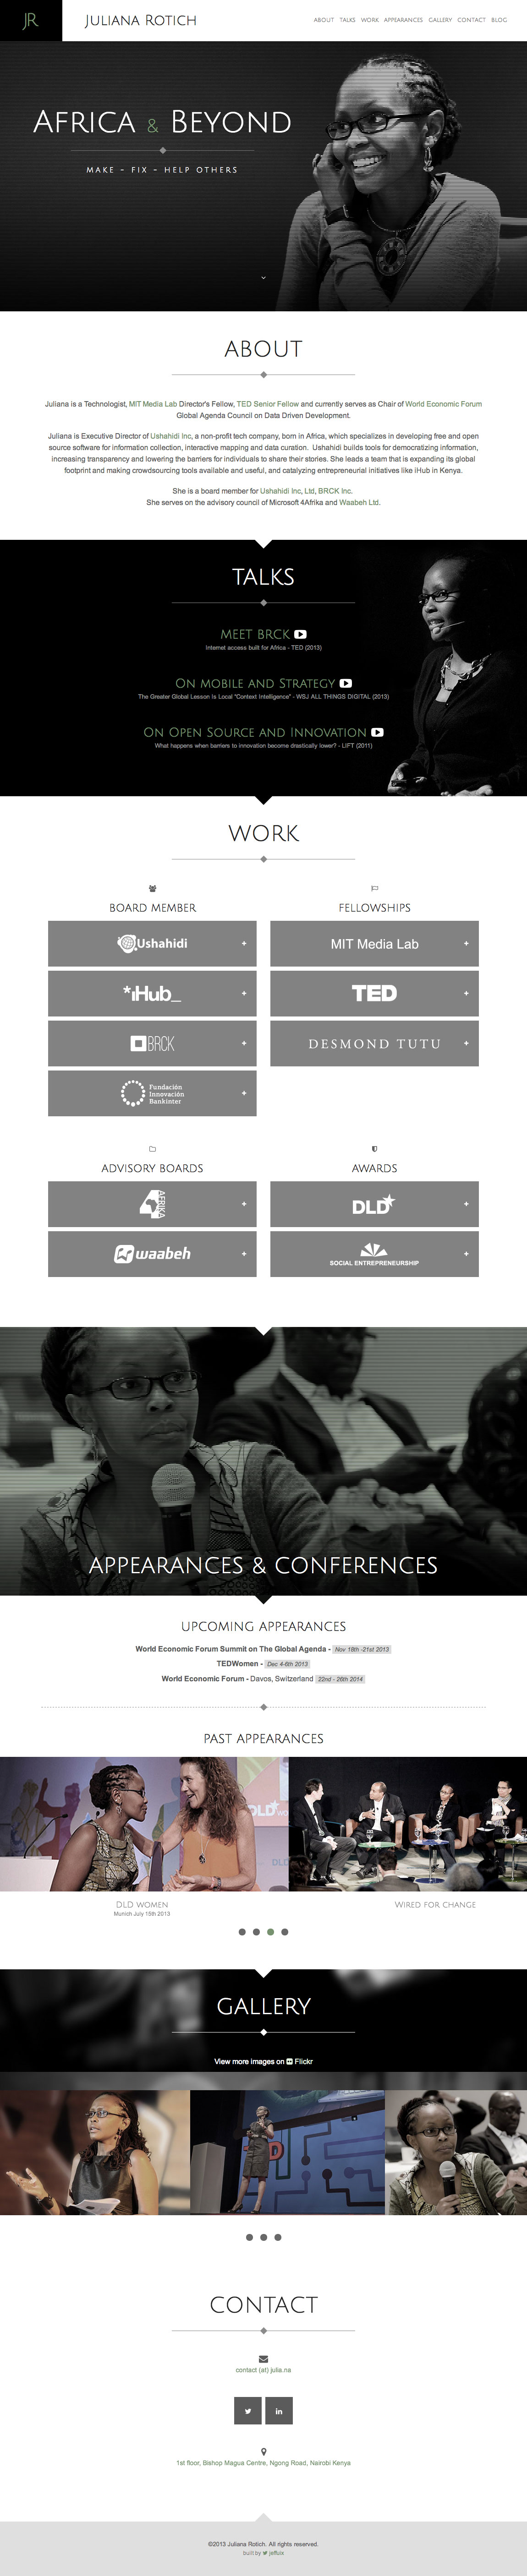 Juliana Rotich Website Screenshot